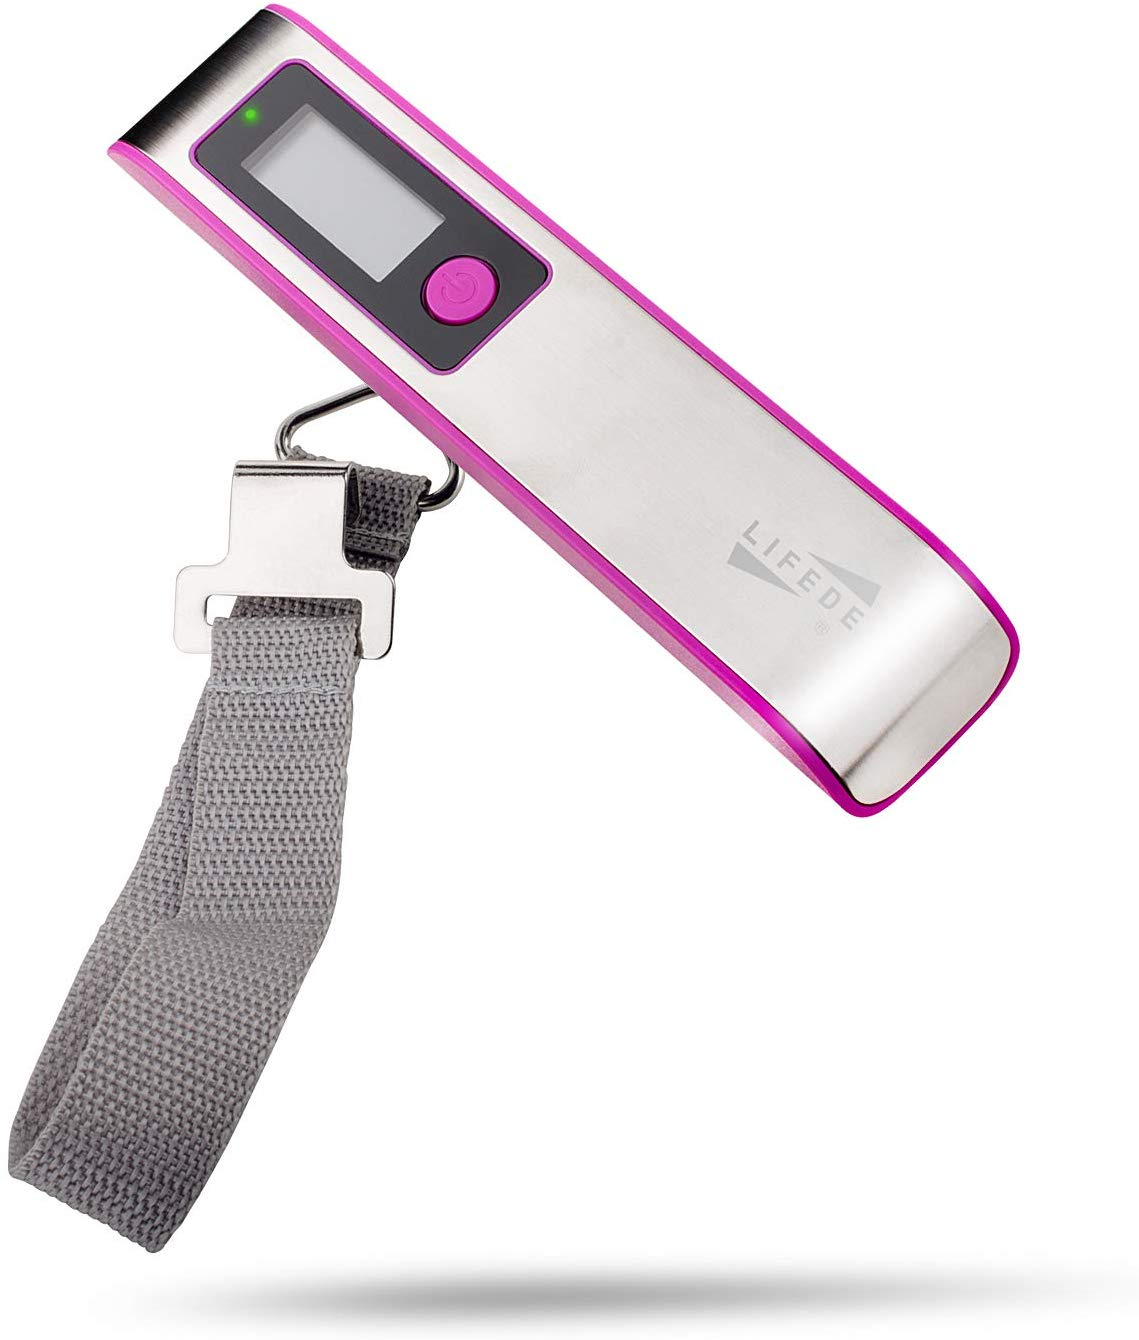 handheld digital scale for luggage